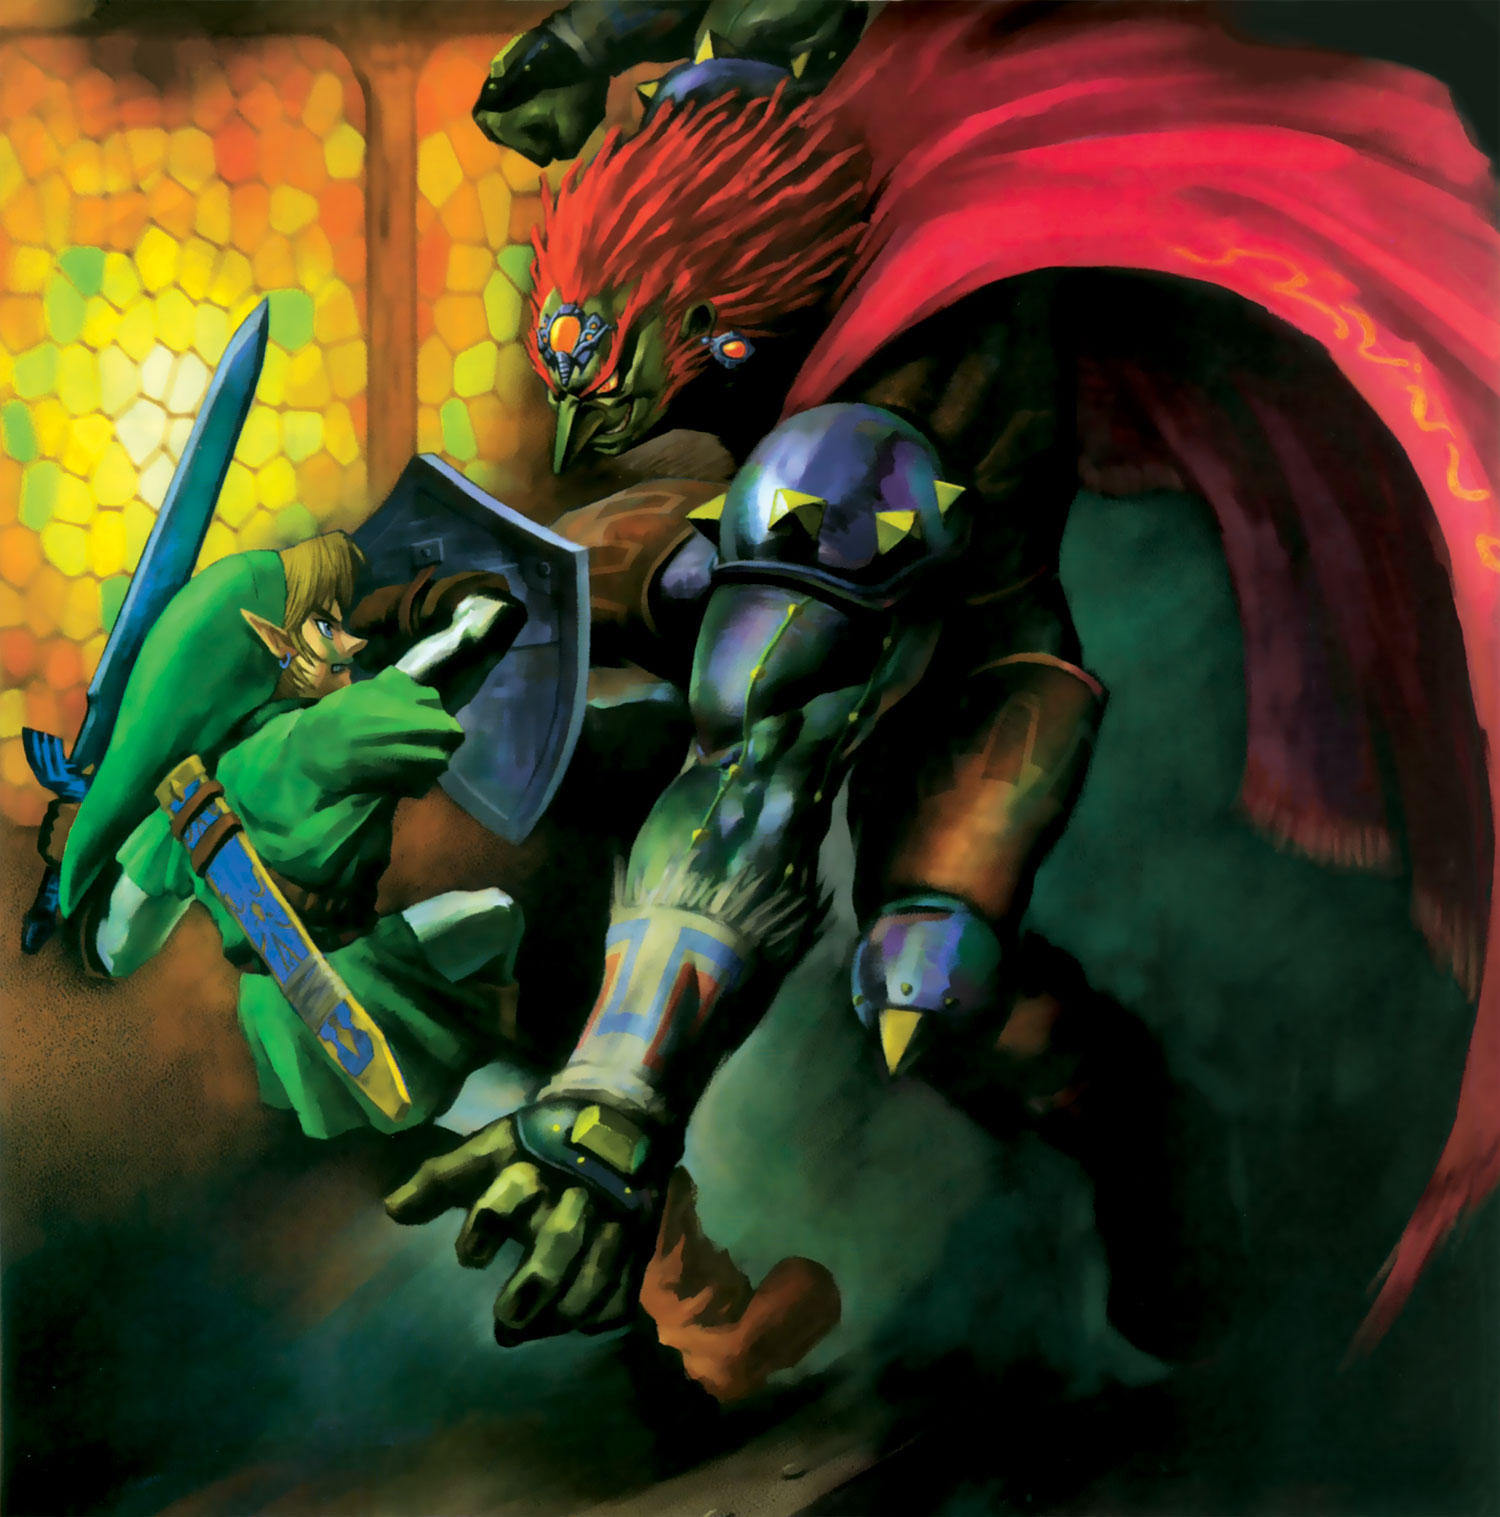 Link Zelda Wallpaper 1500x1517 Link Zelda Fight Ganondorf Shield 1500x1517